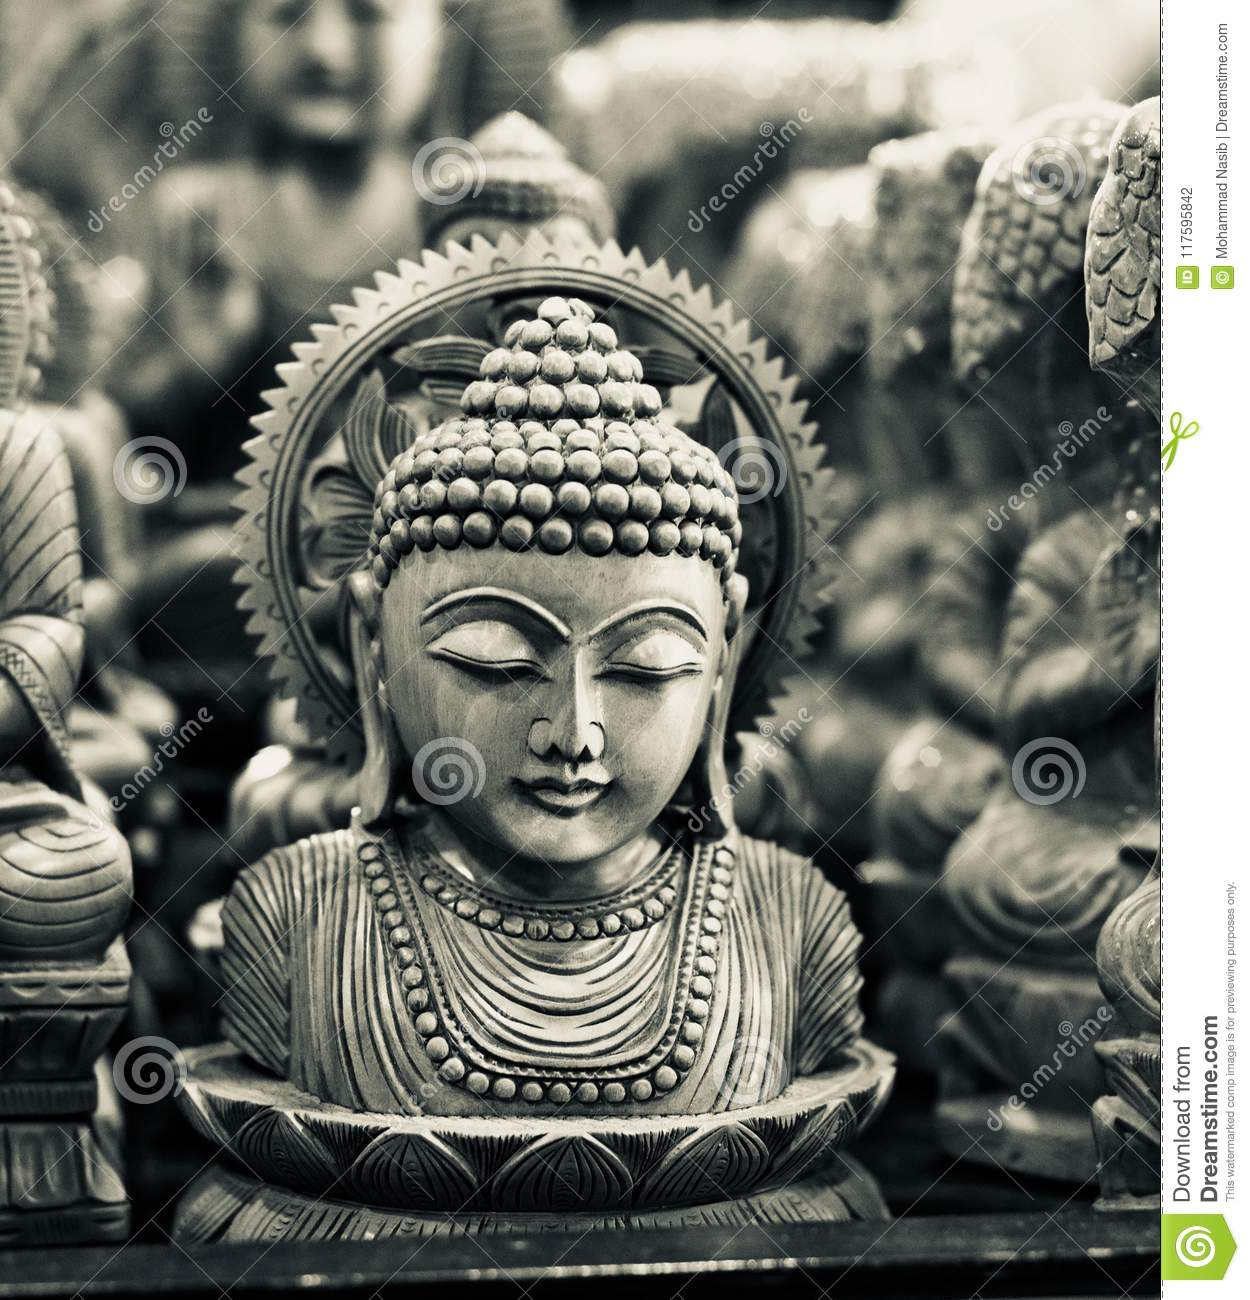 Download Hindu Religious God Isolated Wooden Object Unique Photo Stock Photo - Image of belief, sharp: 117595842